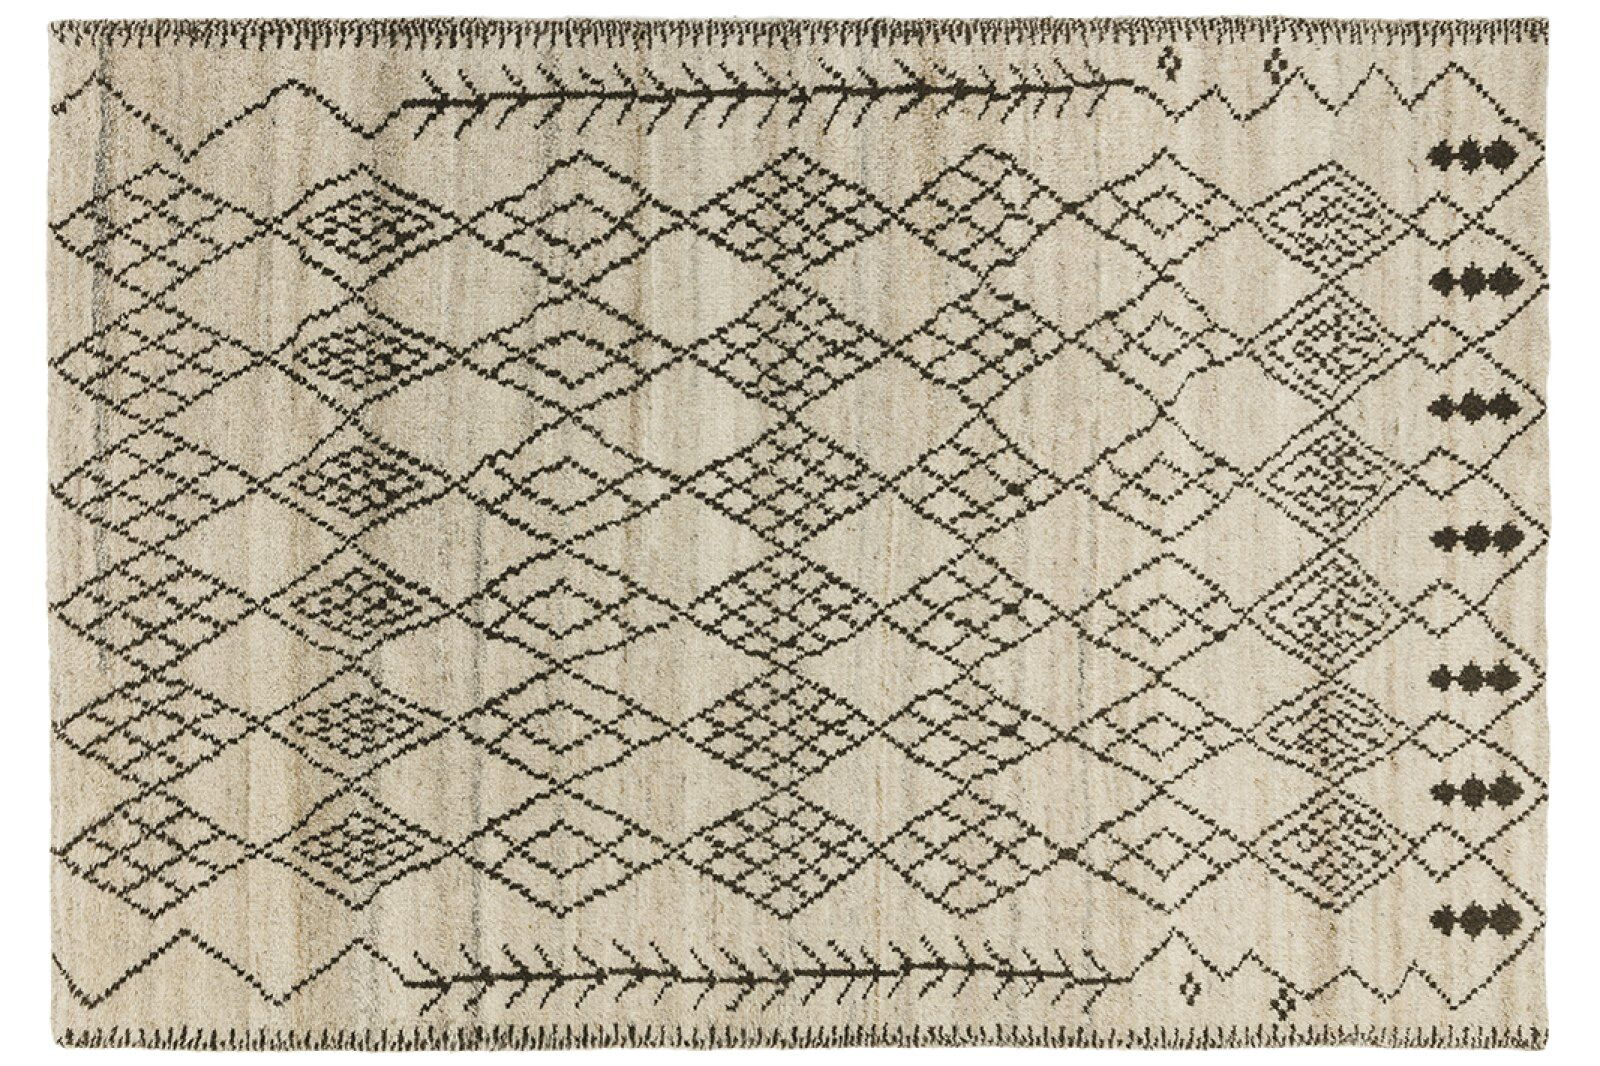 Atlas Hand-Knotted Wool Rug 120x170cm  / 1